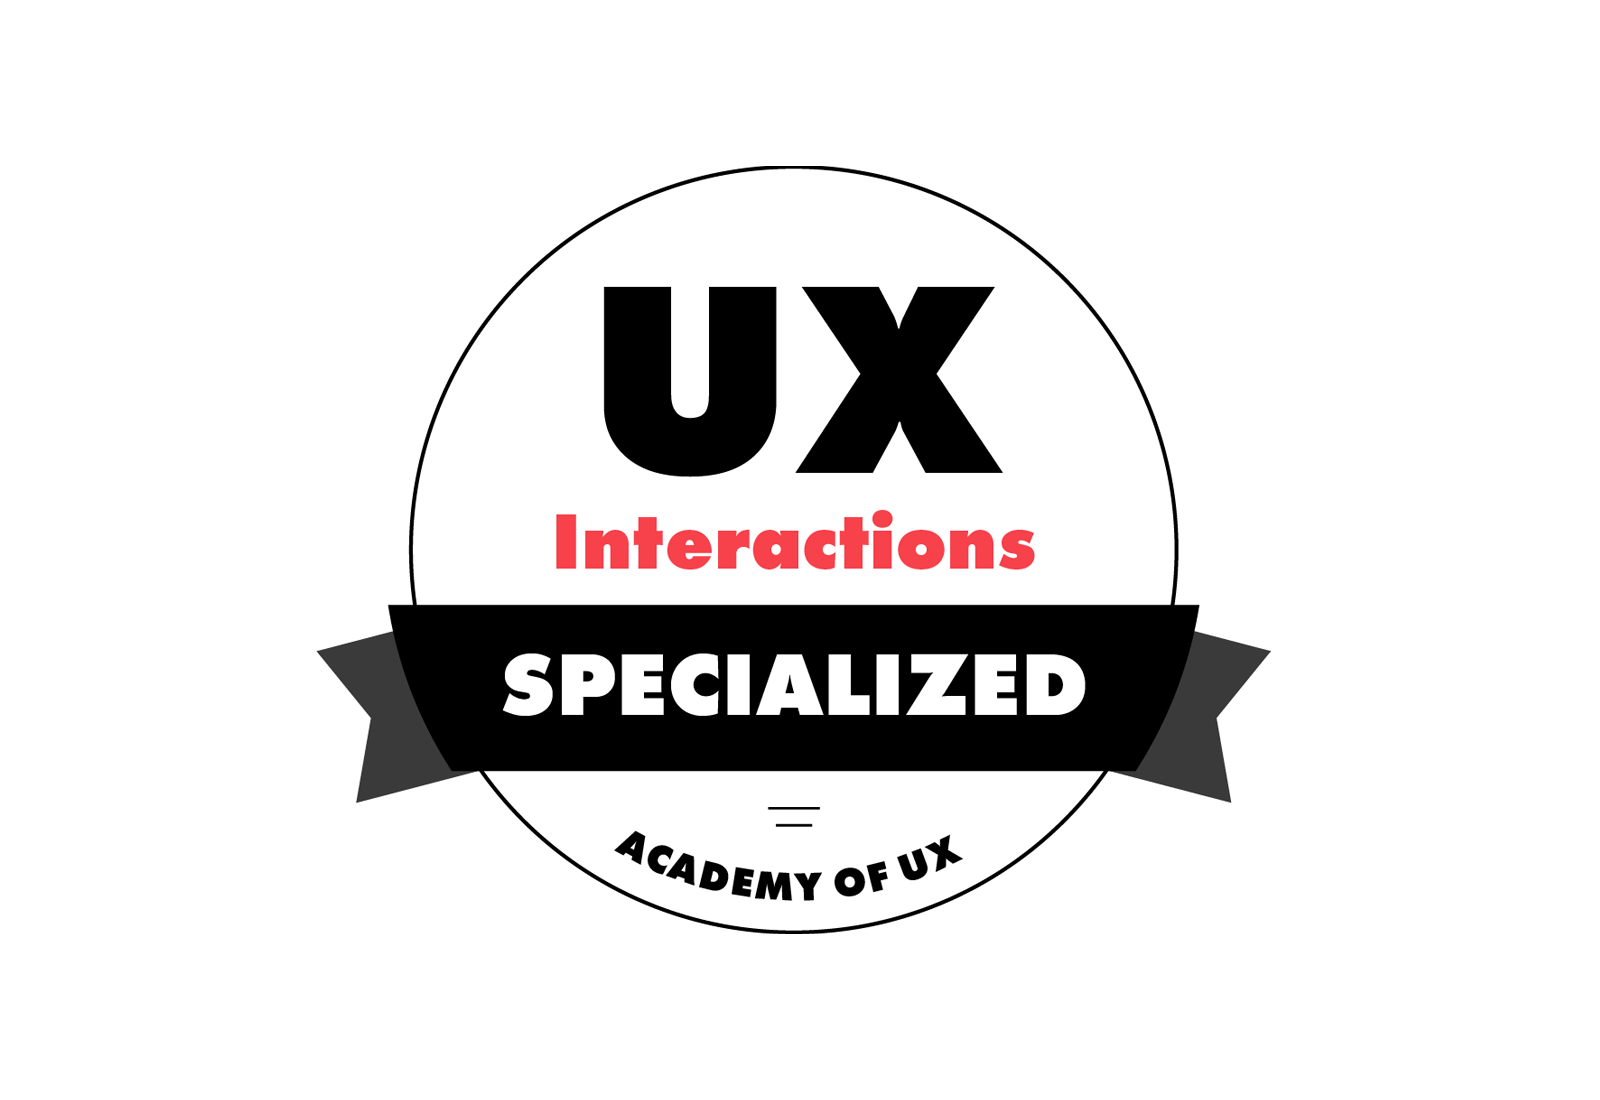 UX-Interactions-Specialized-AcademyOfUX copy